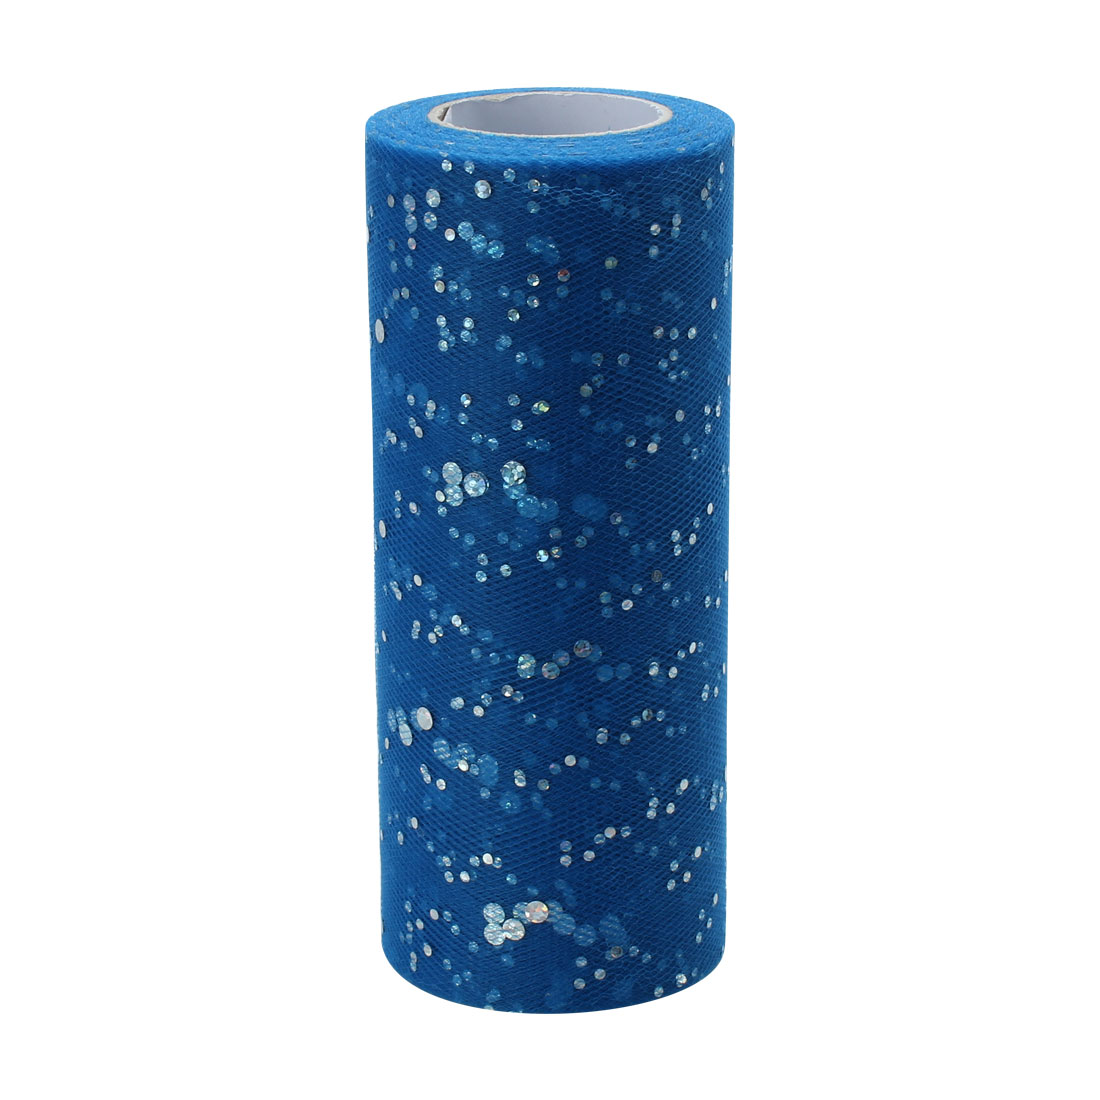 Wedding Polyester Clothes Dress DIY Decoration Tulle Spool Roll Royal Blue 6 Inch x 25 Yards